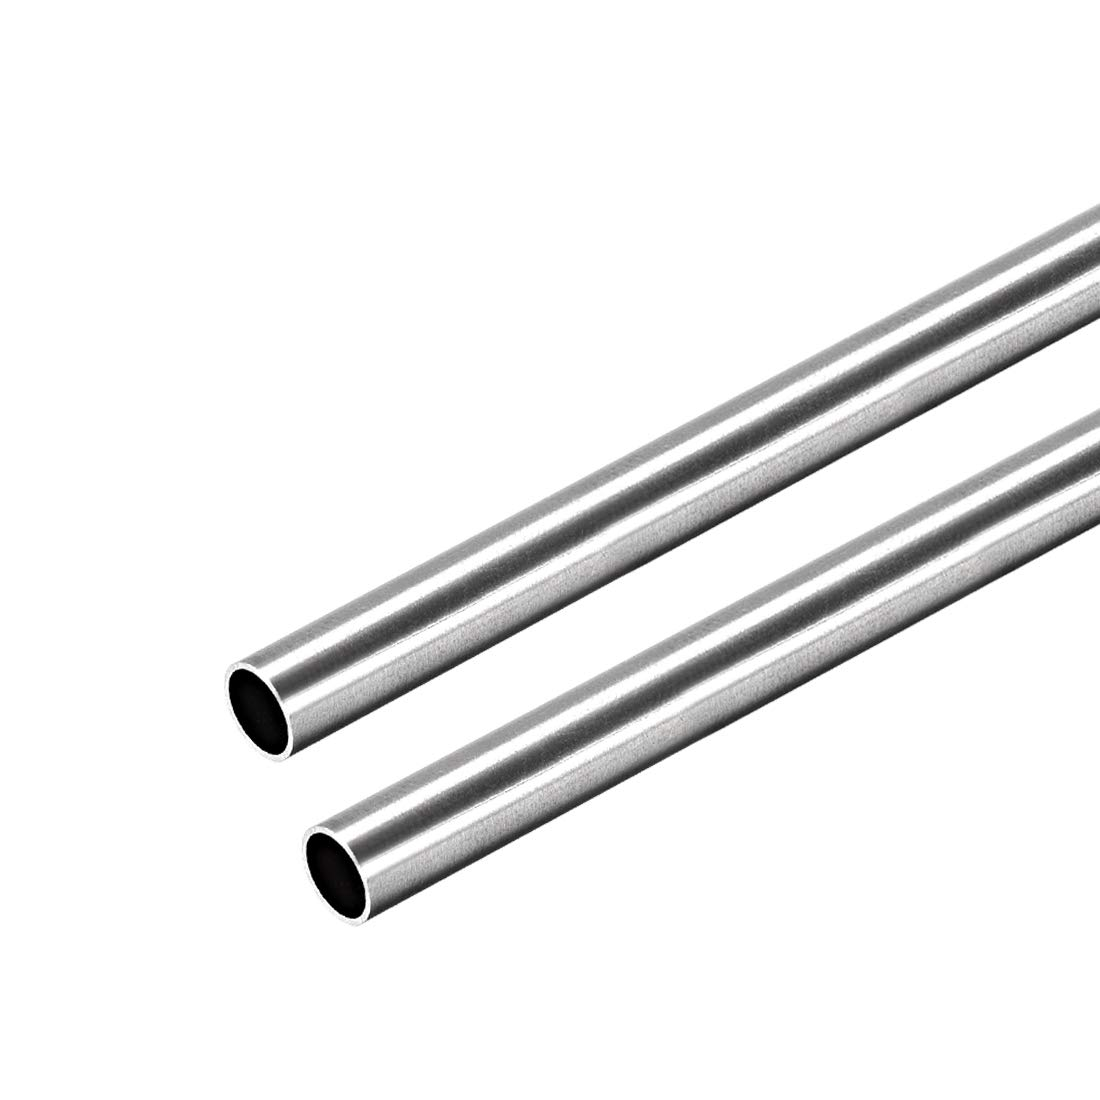 uxcell 304 Stainless Steel Round Tubing 6mm OD 0.4mm Wall Thickness 250mm Length Seamless Straight Pipe Tube 2 Pcs